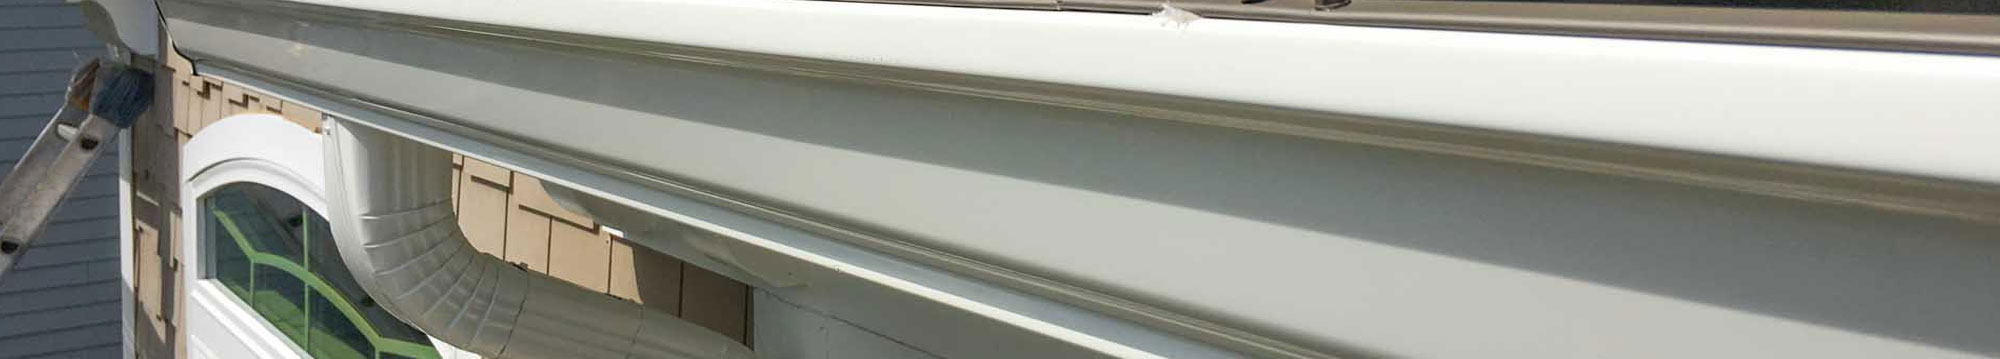 Gutter Guards All About Gutters